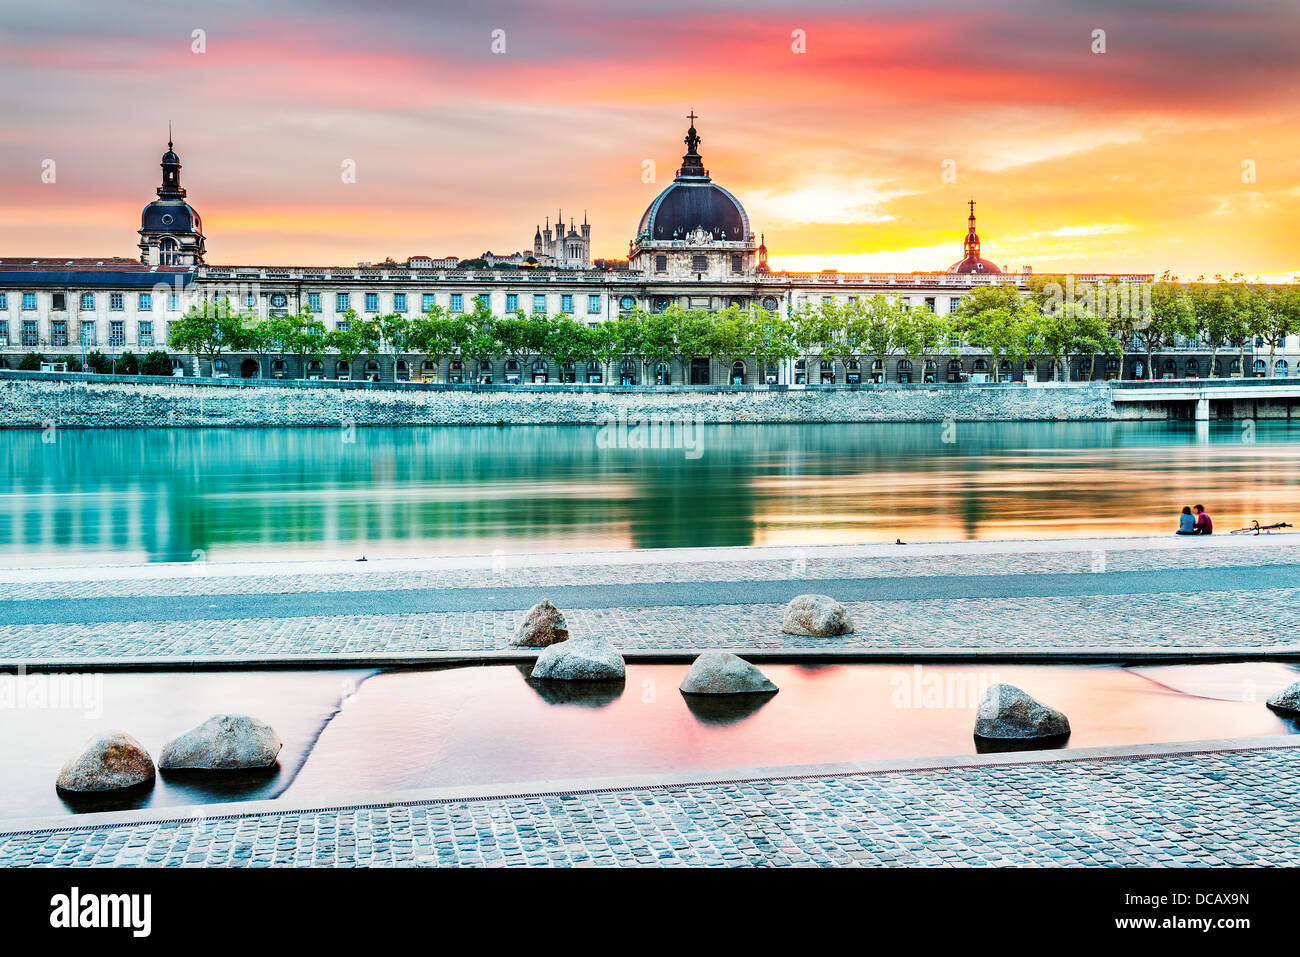 night view from Rhone river in Lyon city with Hotel Dieu and Fourviere cathedral, France - Stock Image